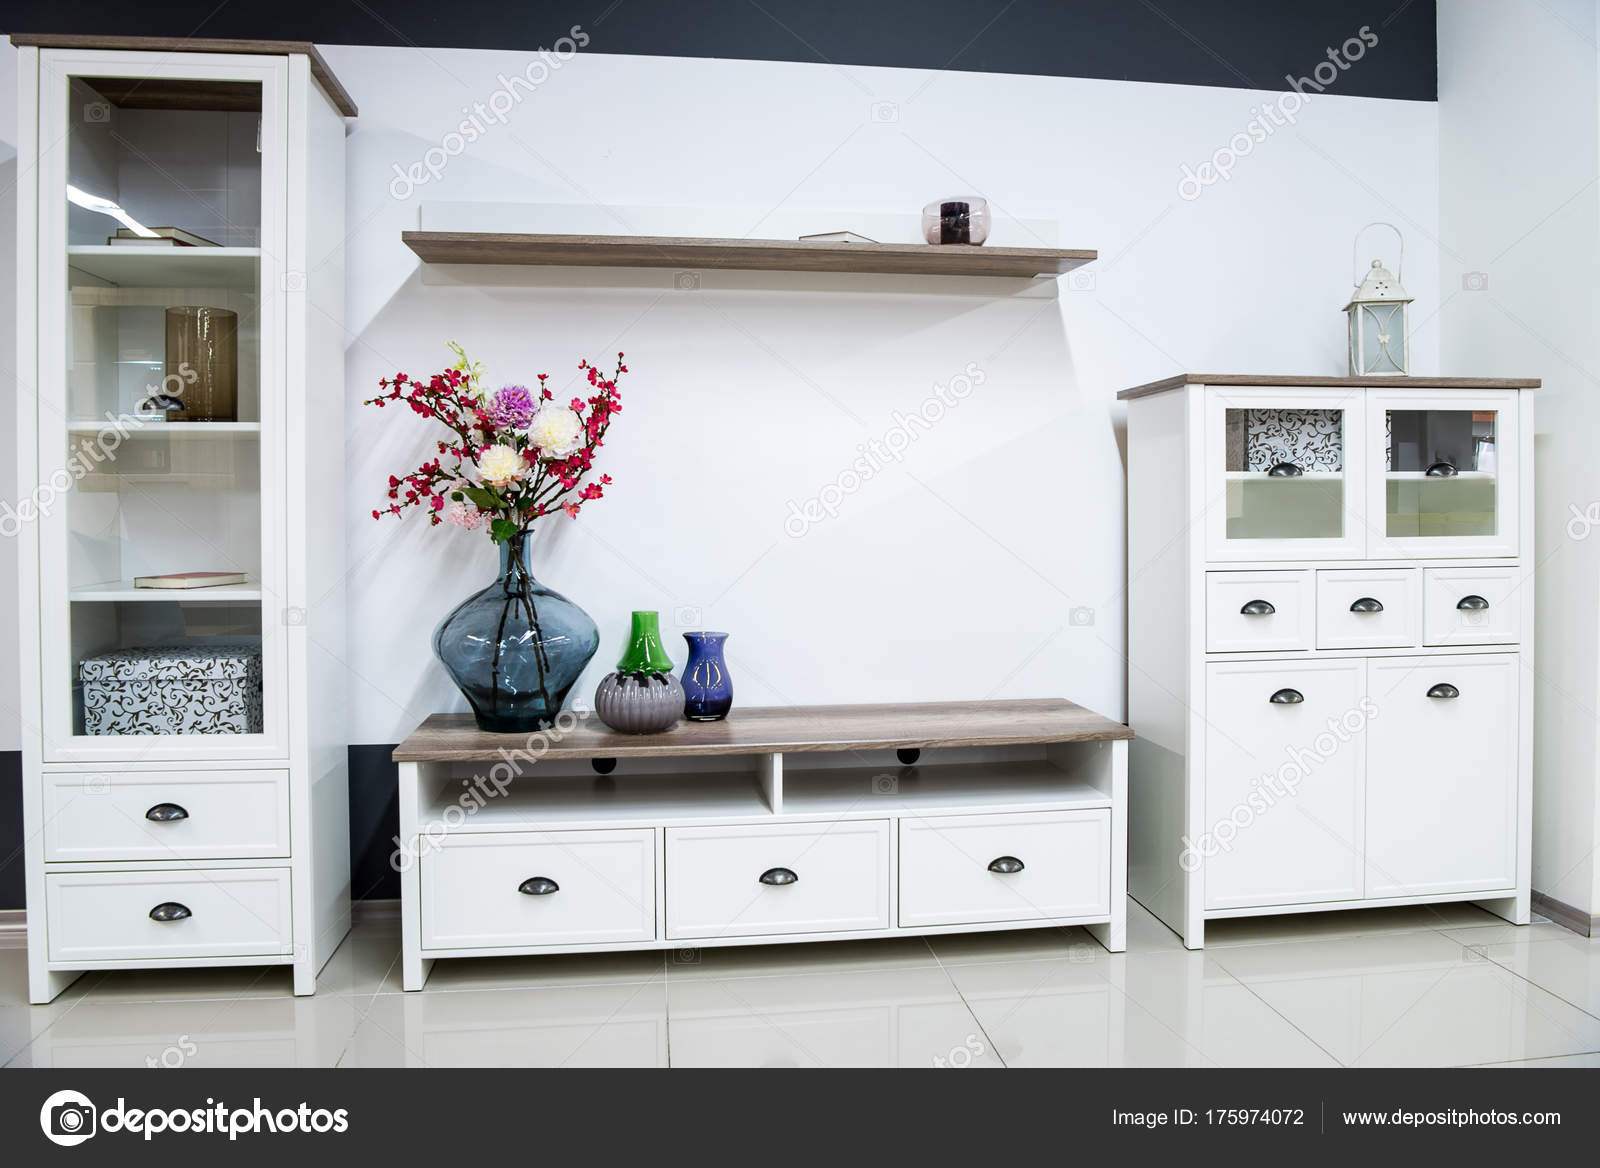 Images Shelves In Living Room Modern Living Room Interior Closet Shelves Stock Photo C Vitalikradko 175974072